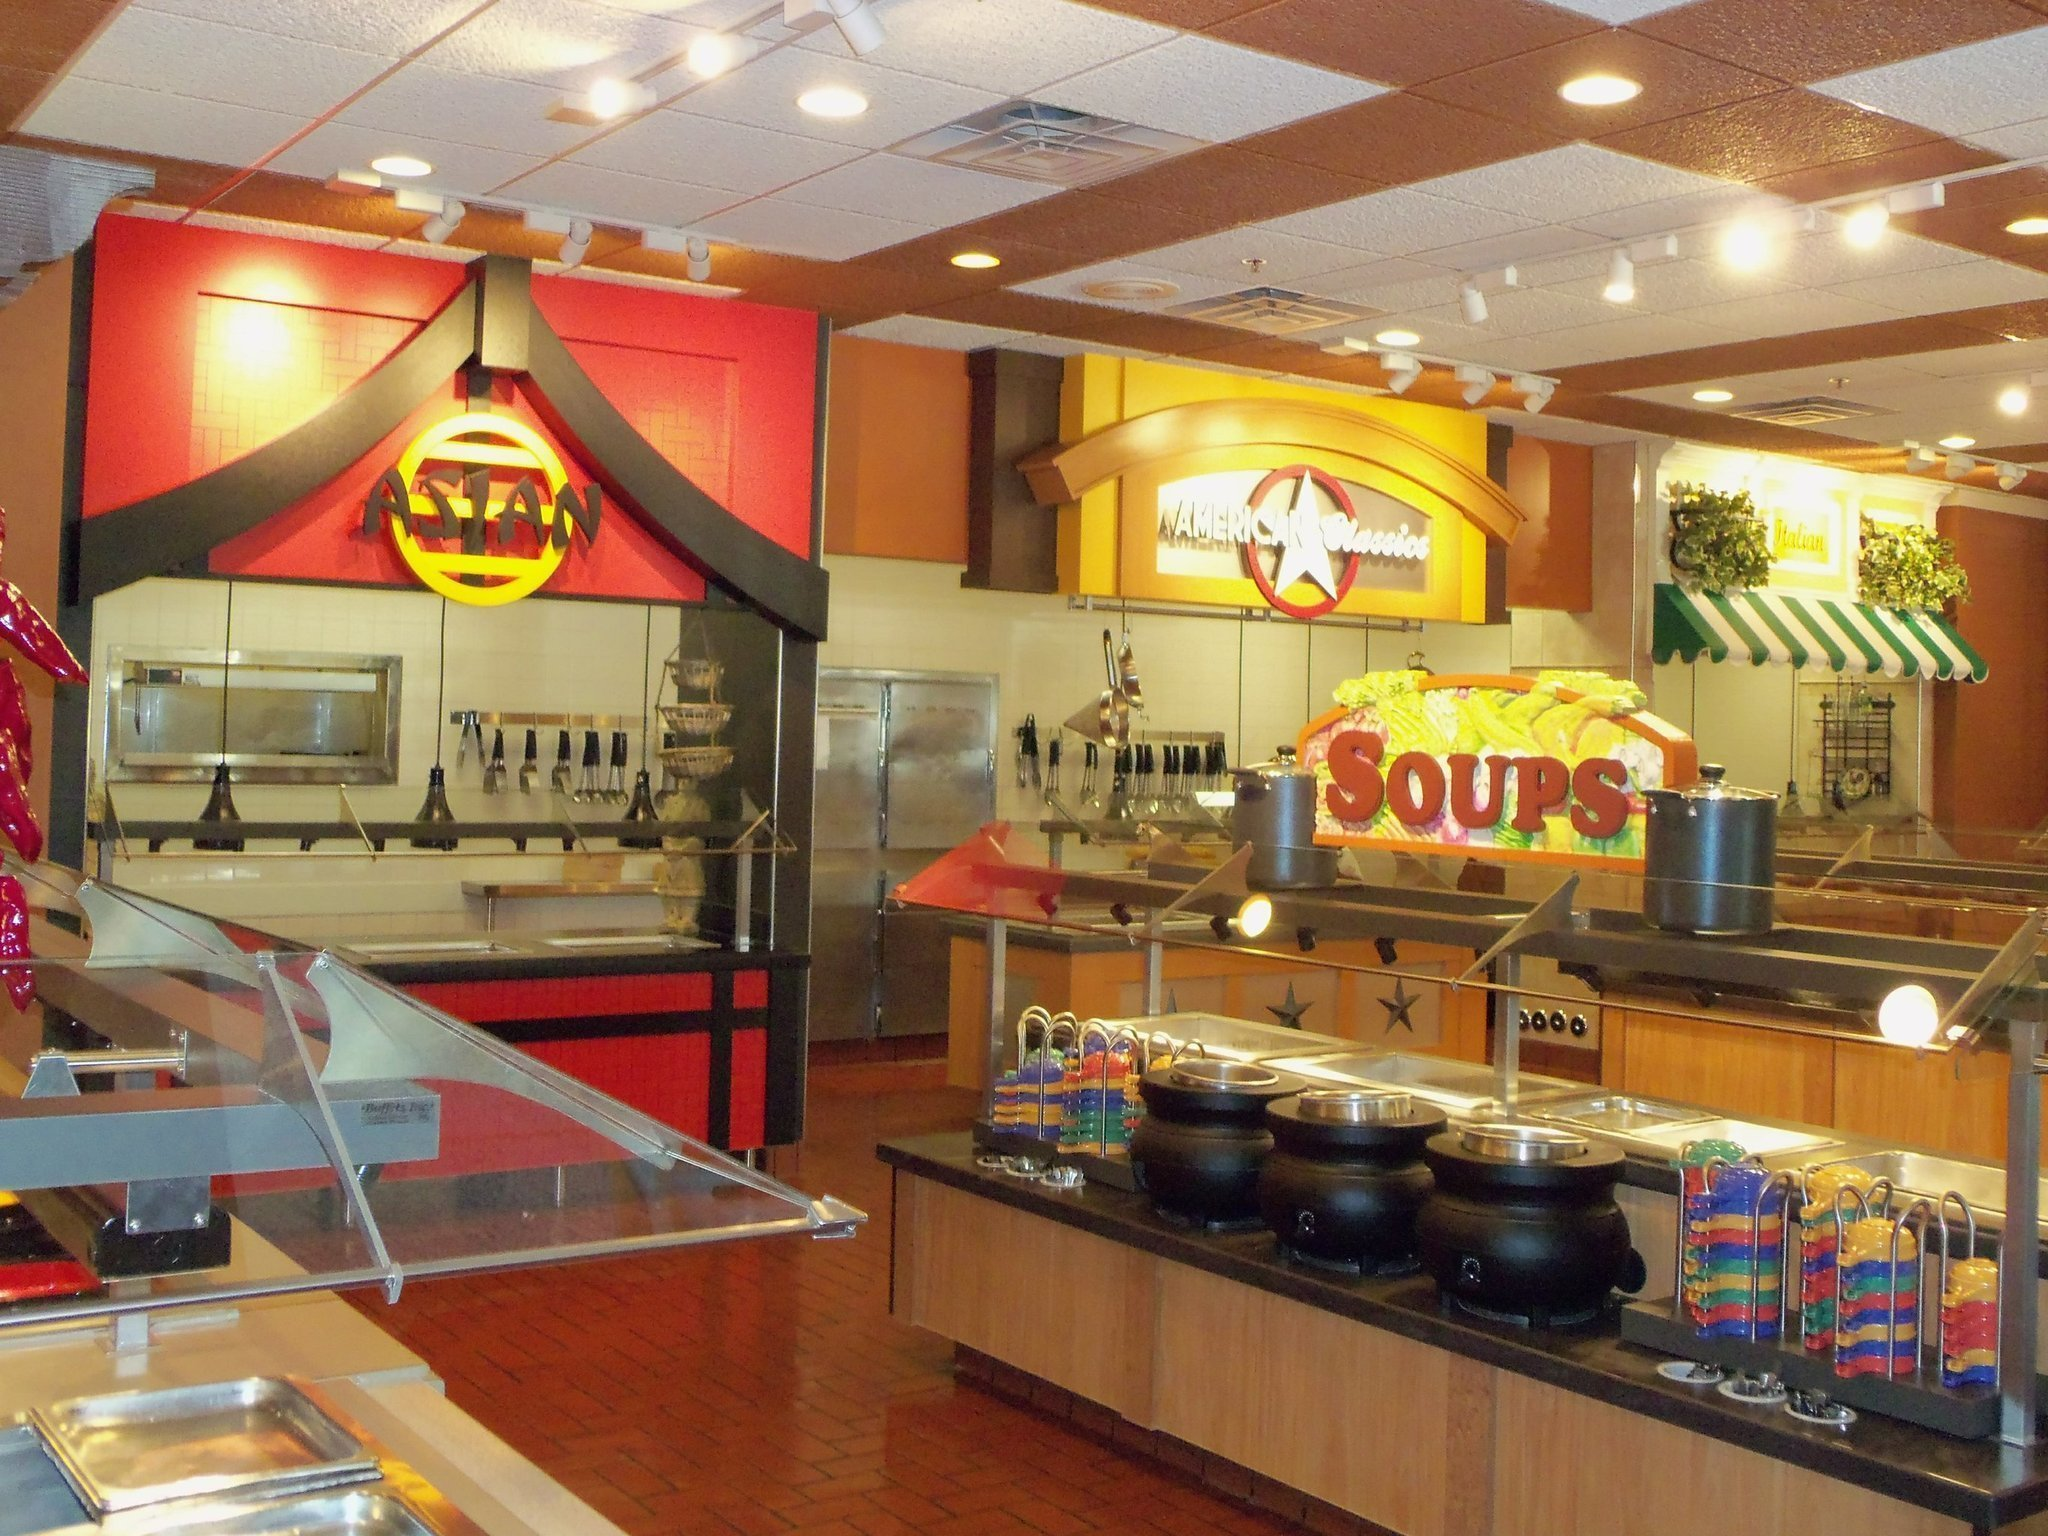 City Of El Cajon >> HomeTown Buffet gets a new look and menu - The San Diego ...